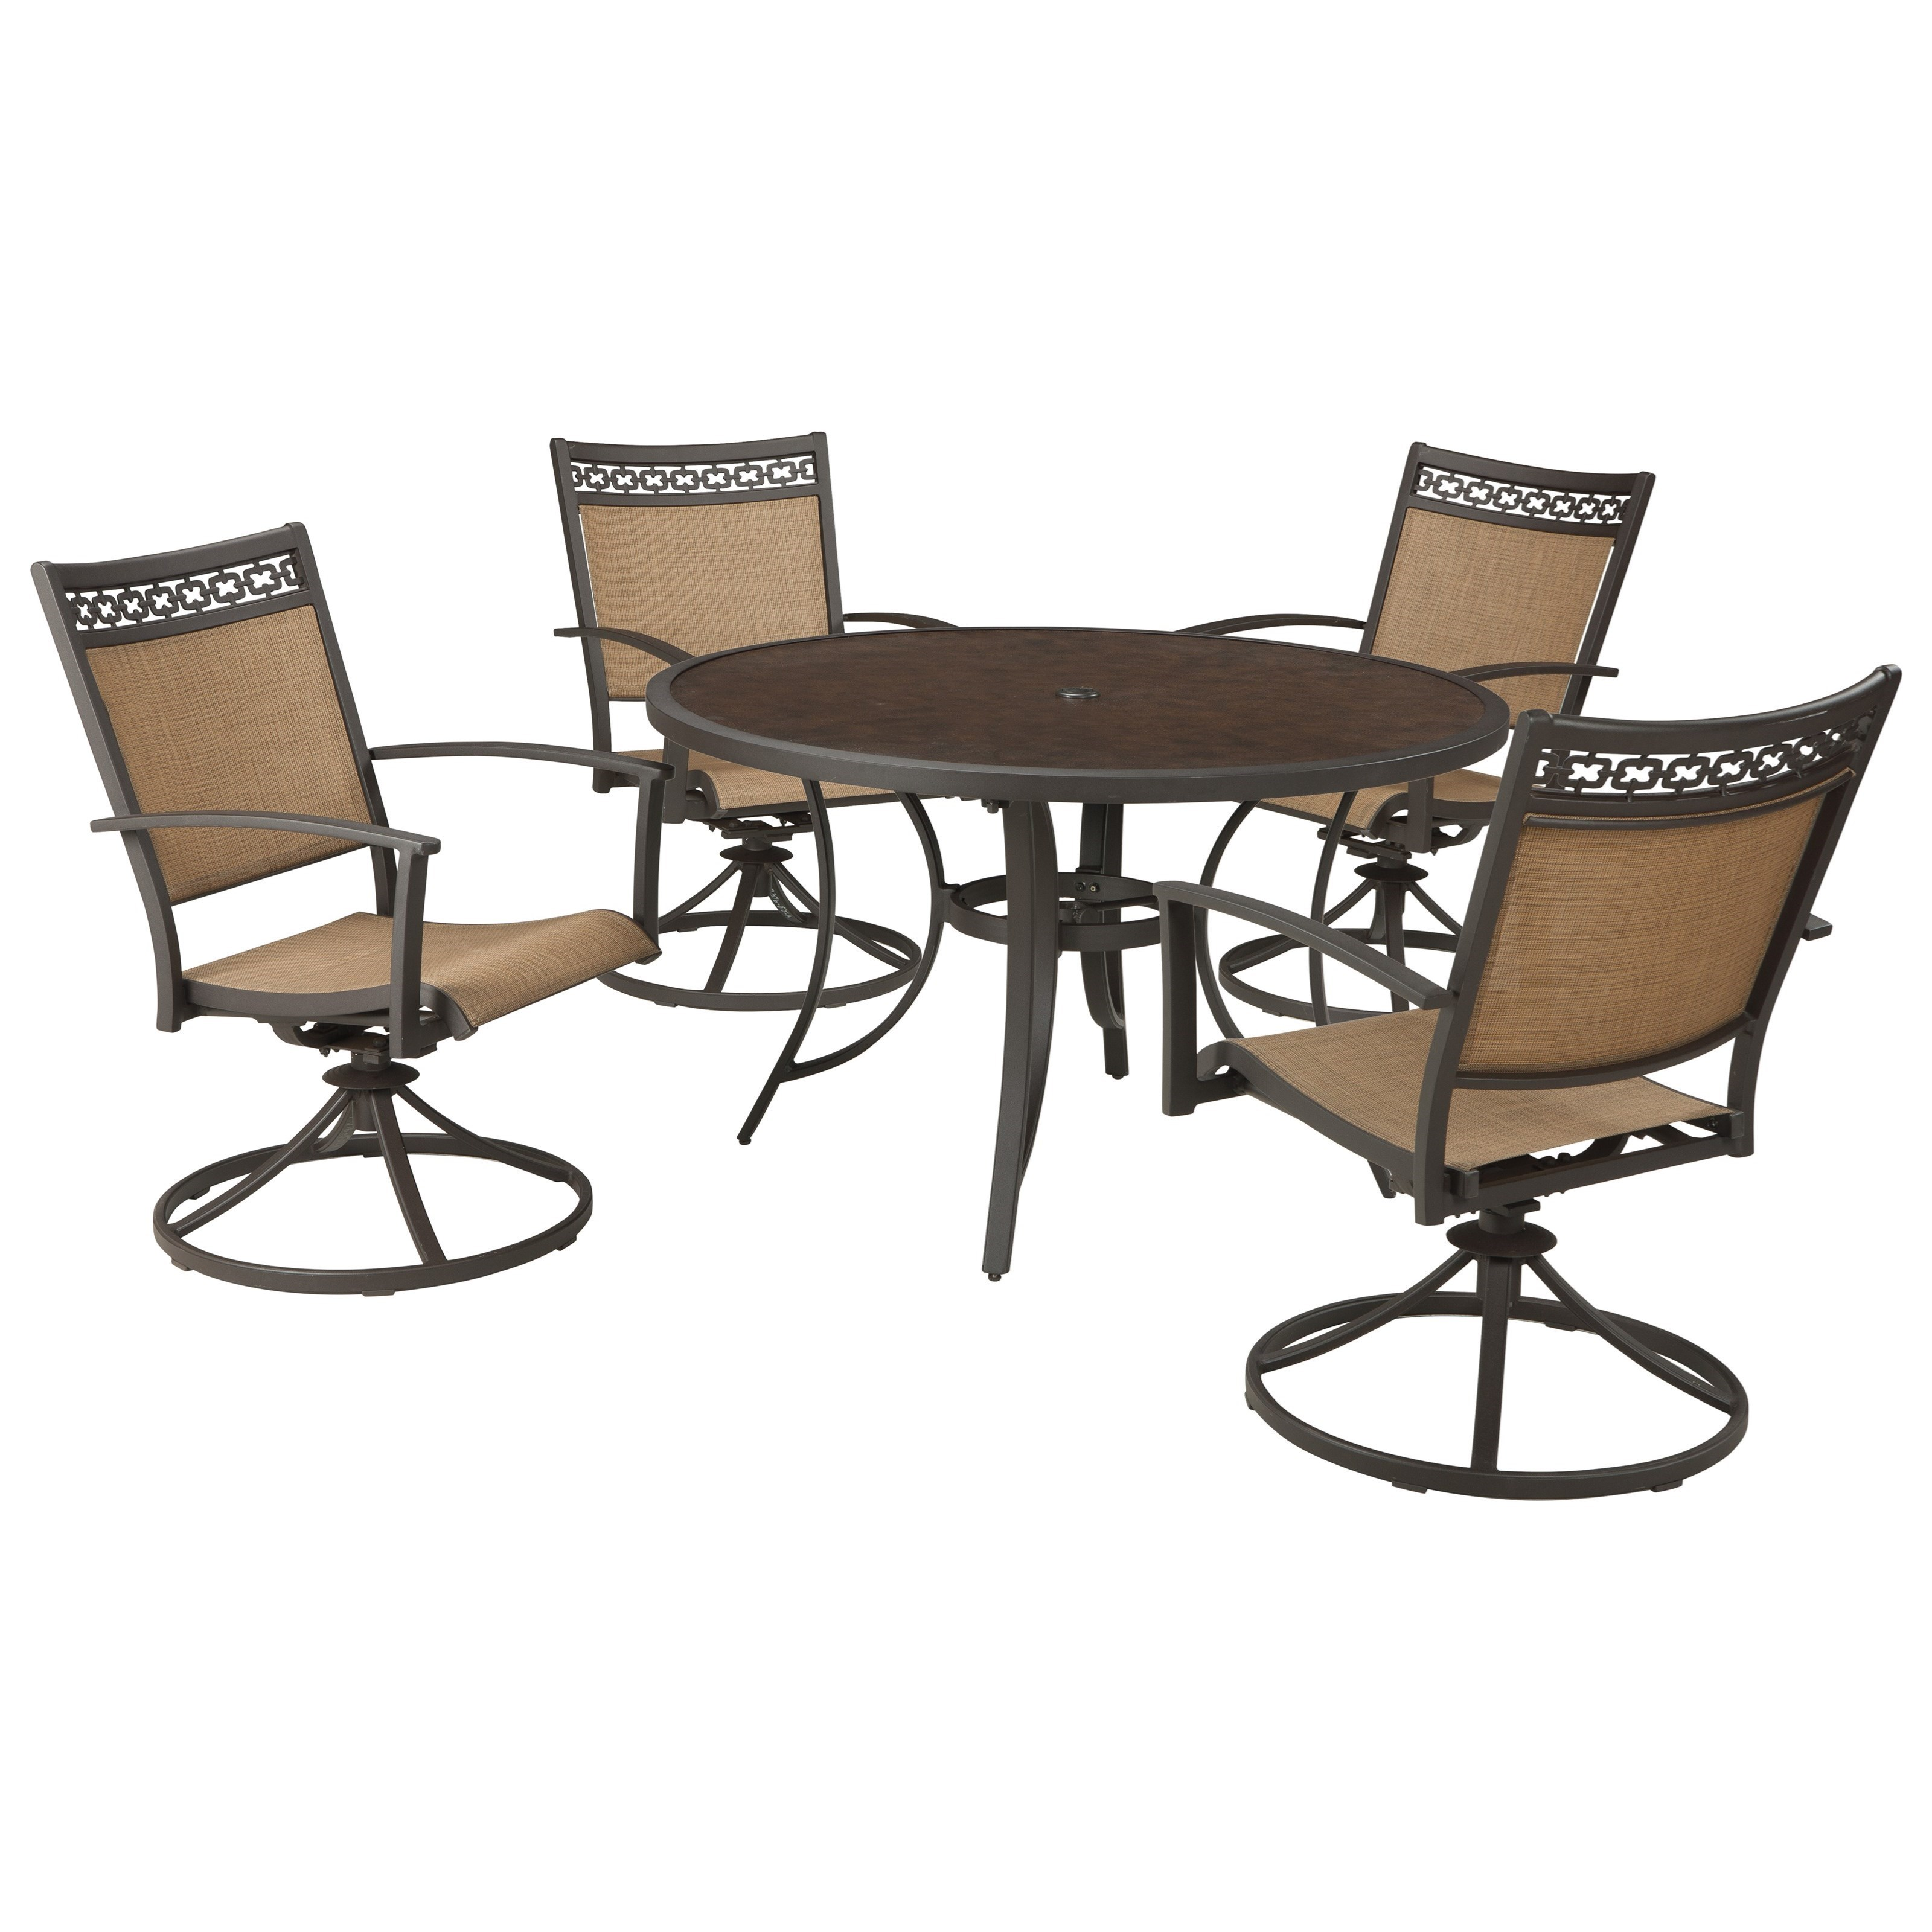 Signature Design by Ashley Carmadelia Outdoor Round Dining Table Set Del So